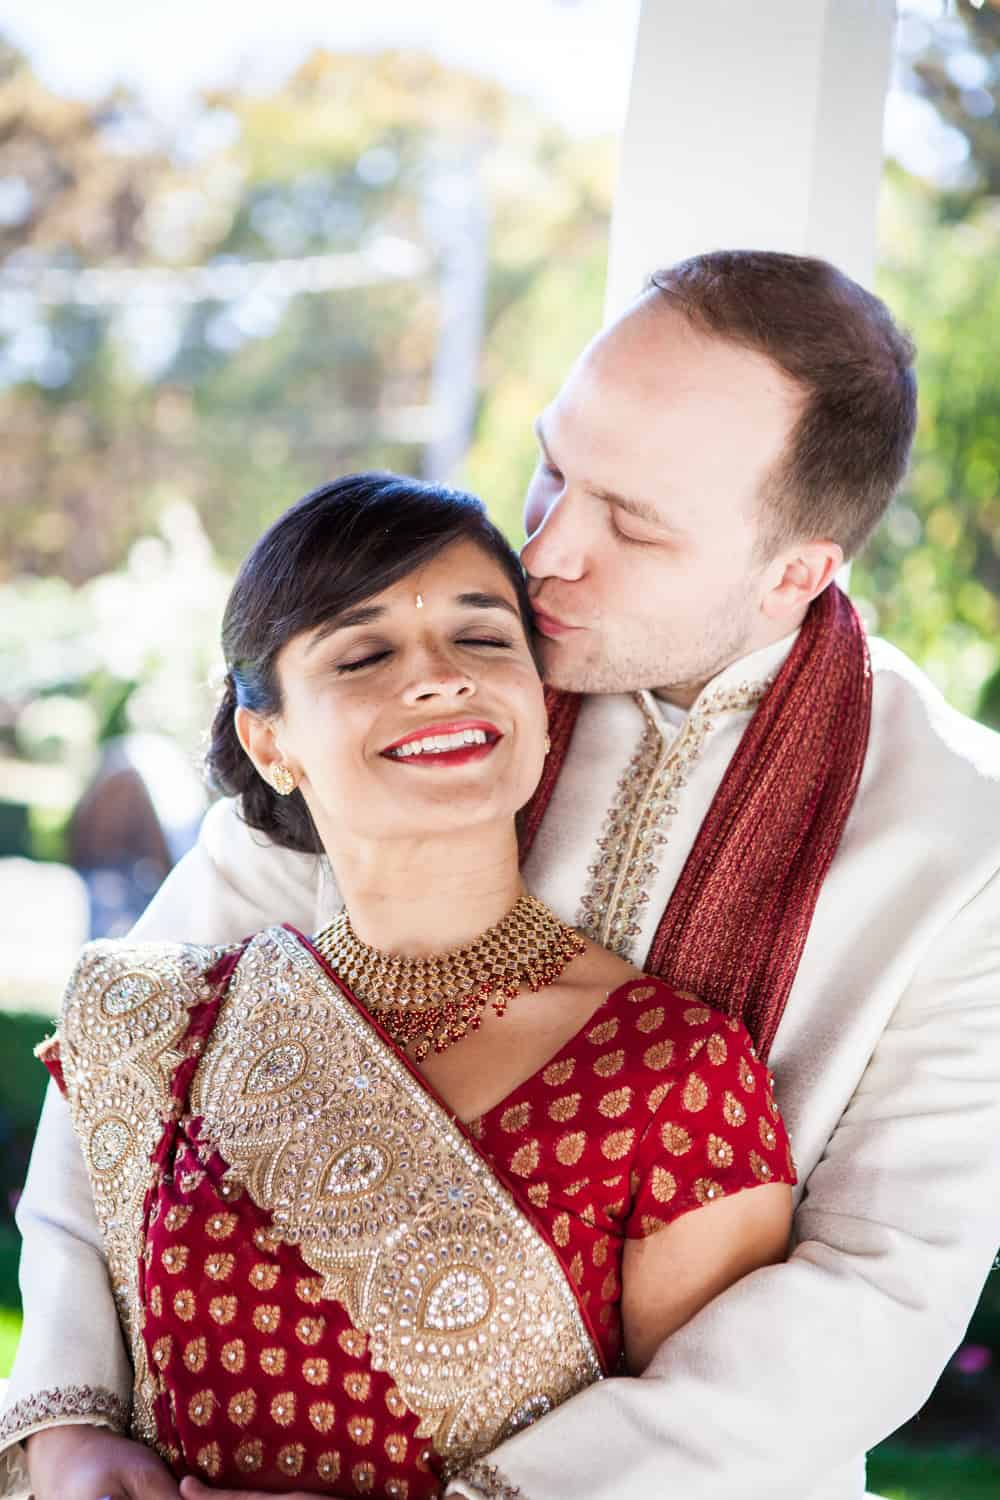 Groom kissing bride while wearing traditional Indian attire Bride and groom wearing traditional wedding attire at an East Wind Inn wedding